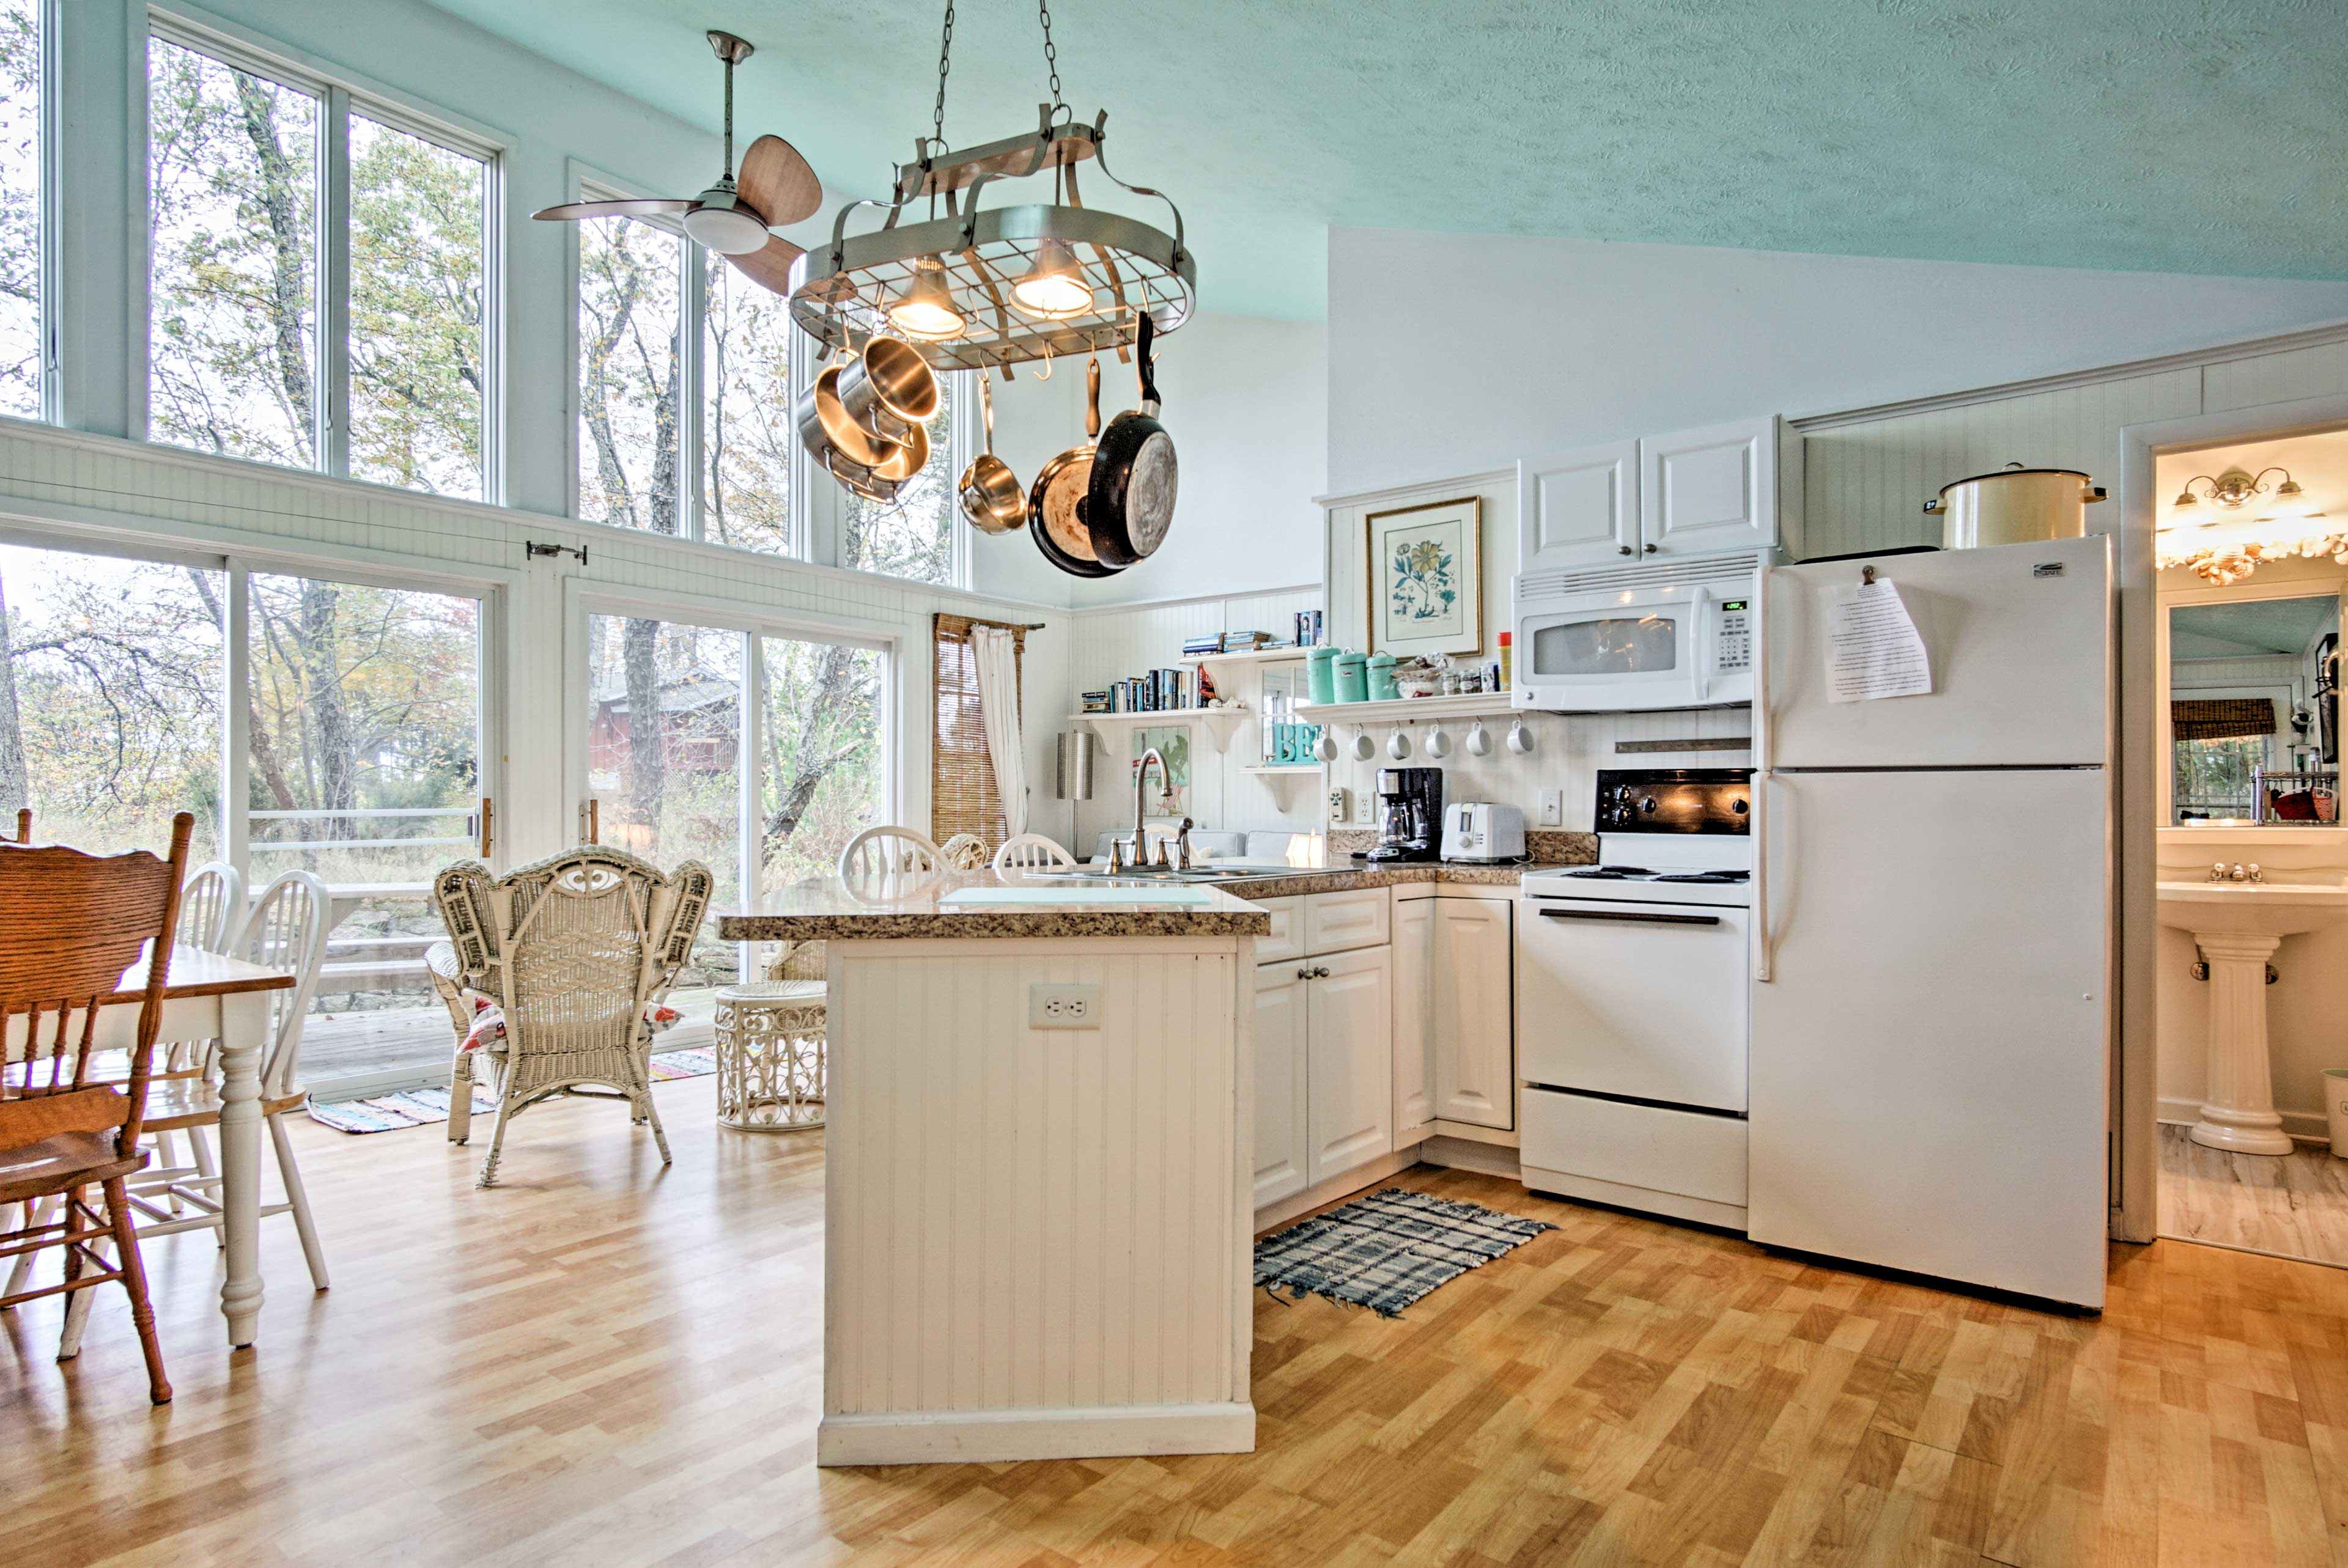 'Sandpiper' features a well-appointed interior complete with beach-themed decor.